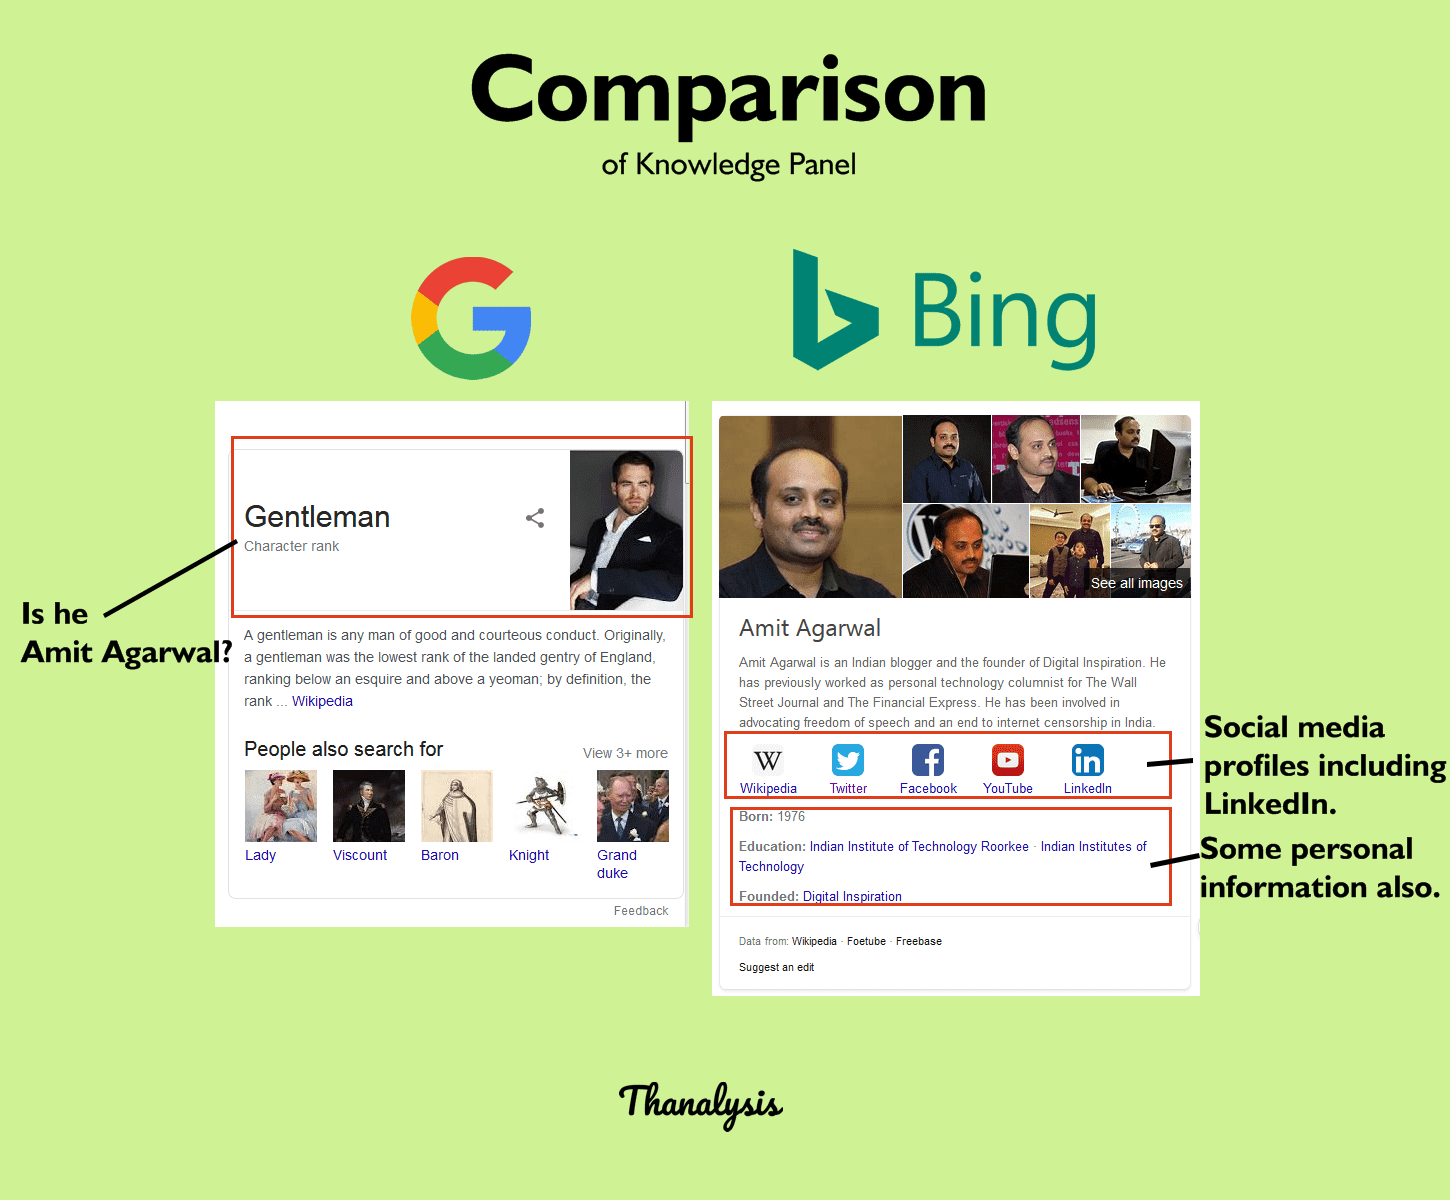 Comparison of the knowledge panel provided by Google and Bing on Reverse Image Search for Amit Agarwal's image